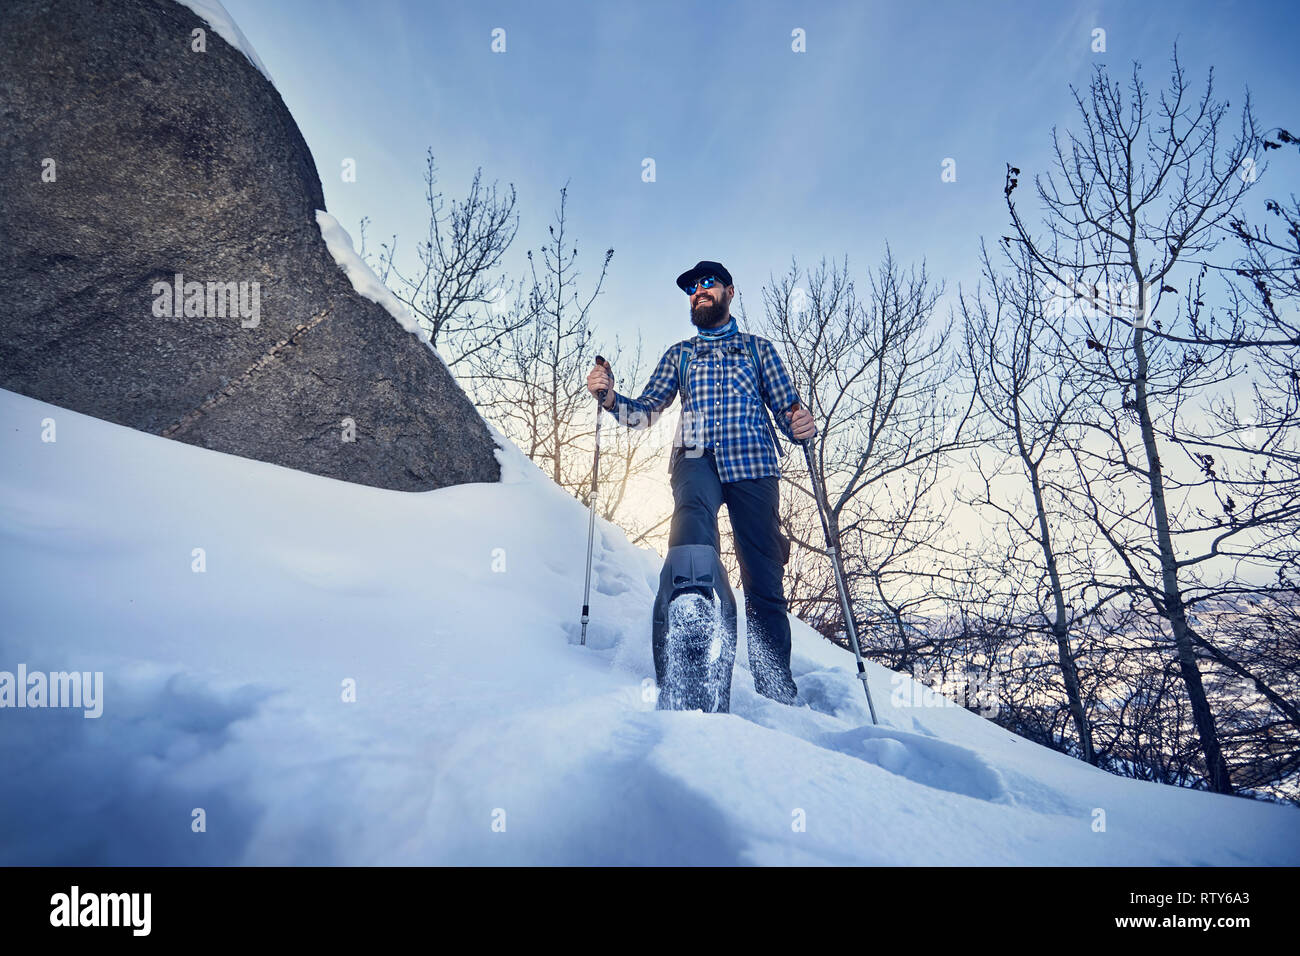 Happy Hiker with beard in snowshoes at winter forest at blue sky background - Stock Image